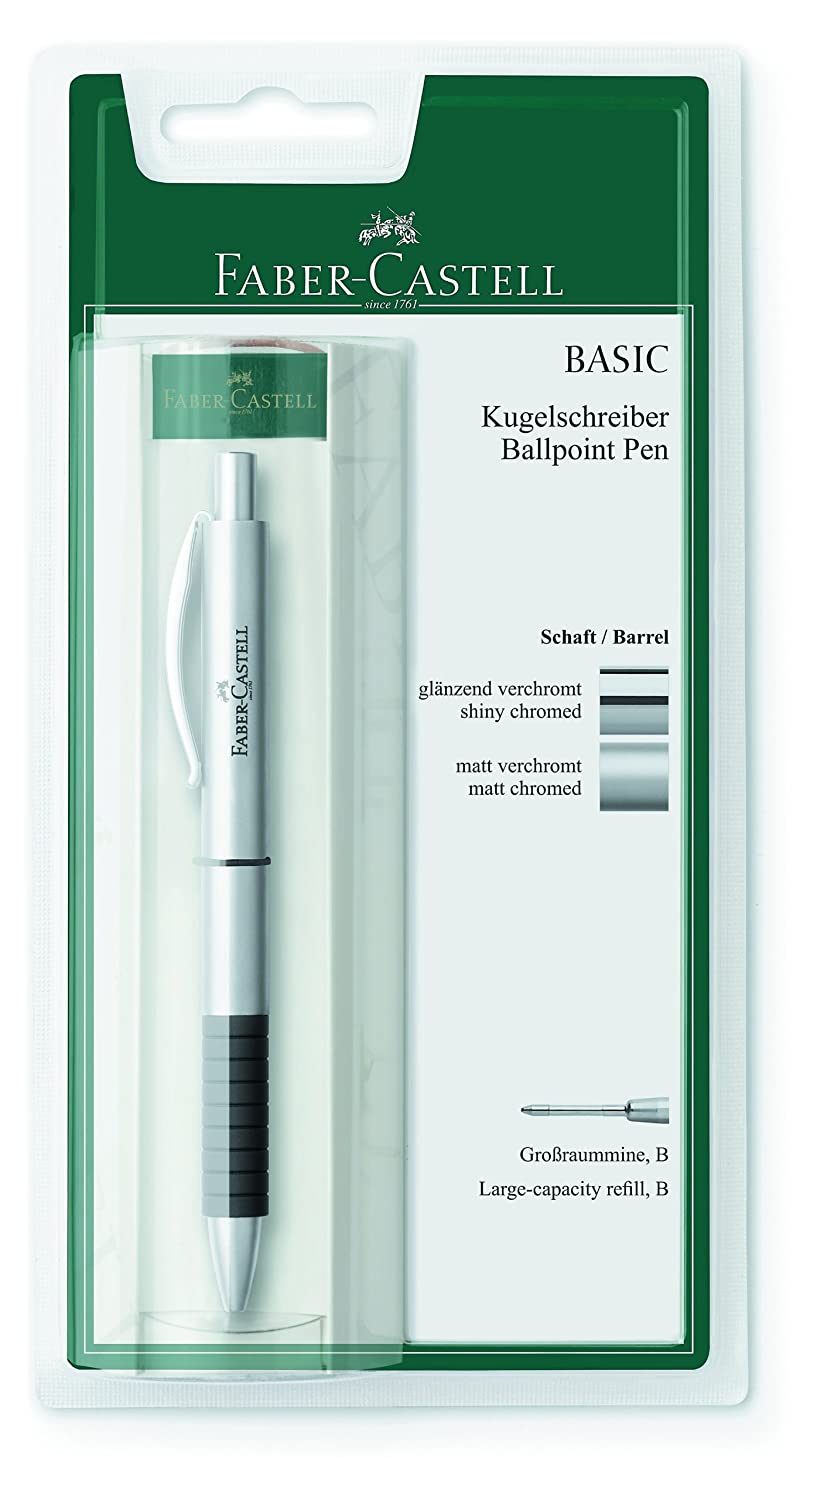 penna a sfera in metallo BASIC Shaft Colore: argento Faber-Castell 148 478 Refill: B